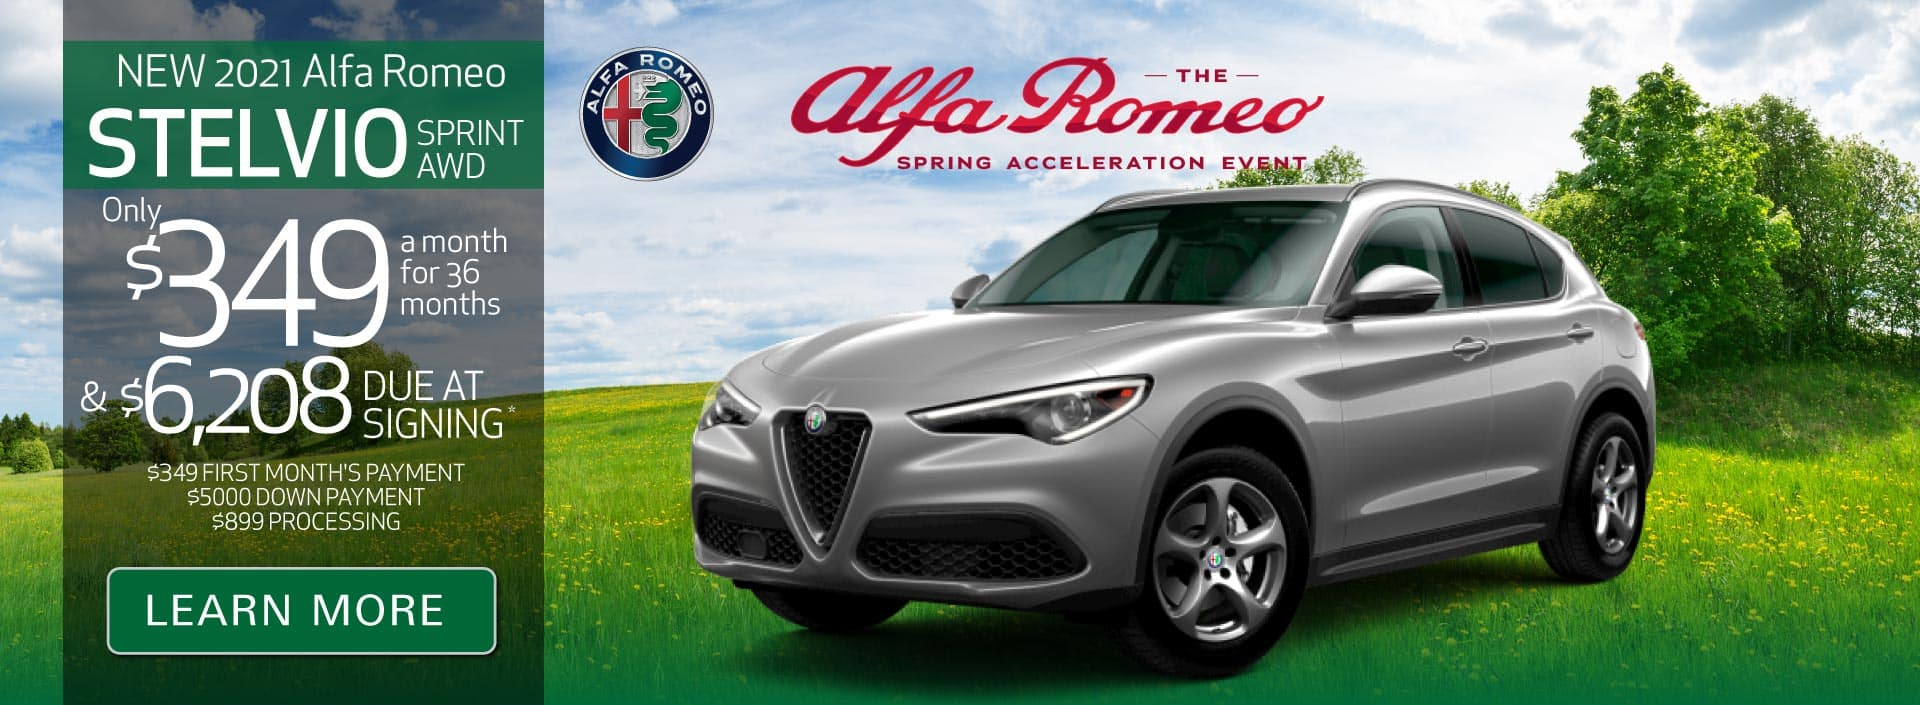 New 2021 Stelvio only $349 a month | Learn More